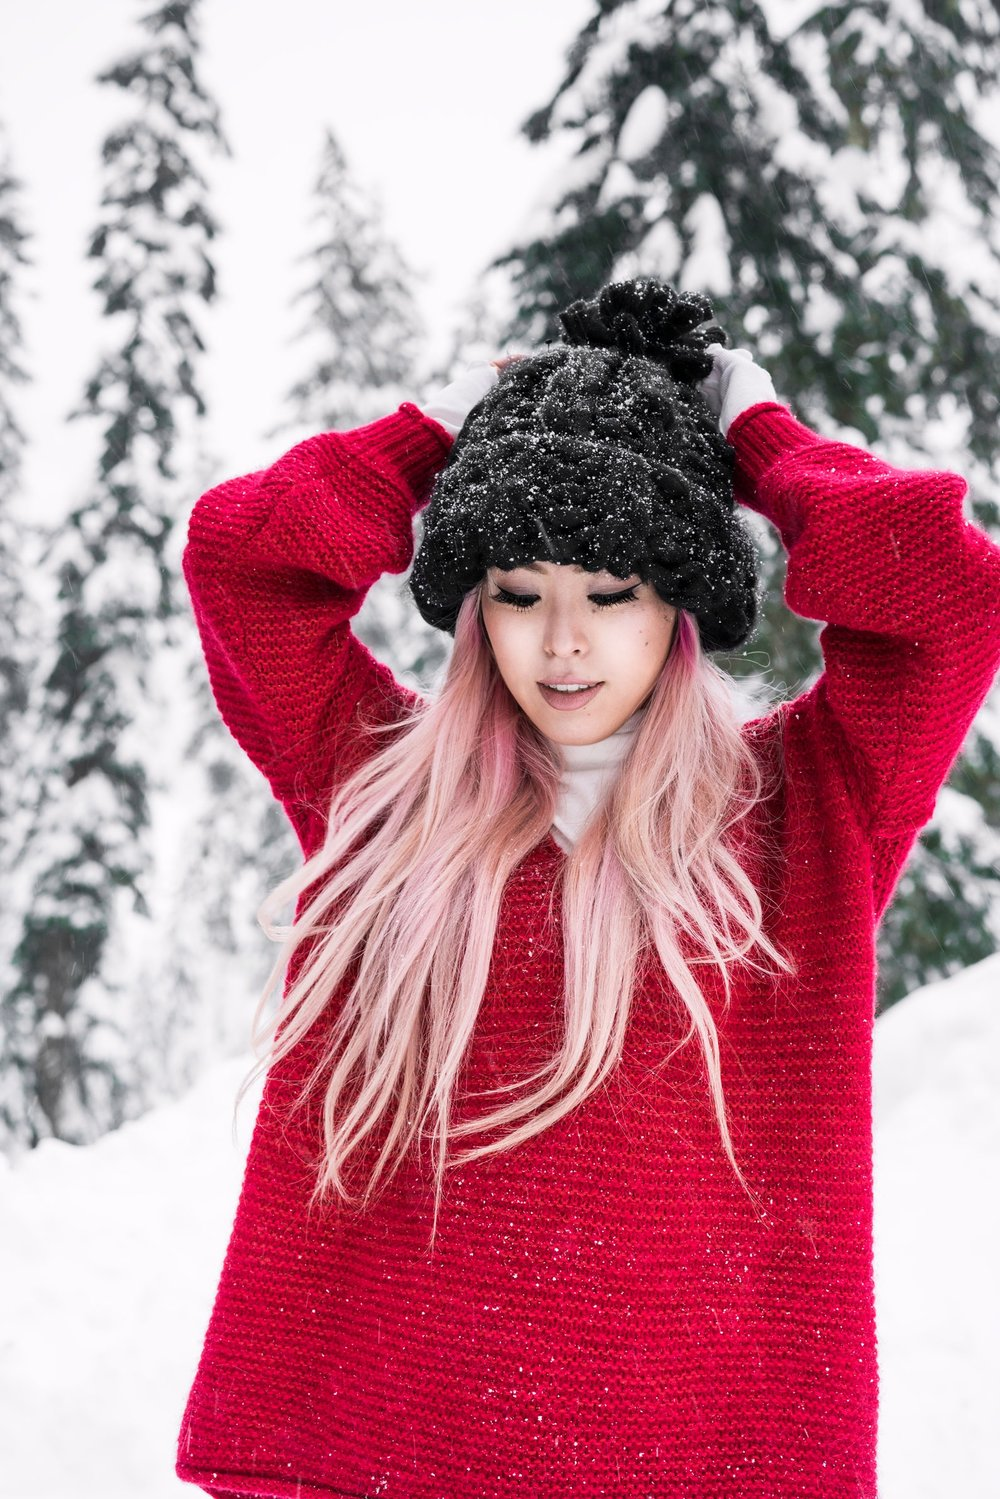 Free people All Mine Sweater, Free People Modern Cuff Layering Top, Free People Ace High Rise Jeans, Free People Bobbi Chunky Pom Beanie, EGO Ankle Boots, Aika's Love Closet, Seattle Fashion Blogger from Japan, Pink Hair 7